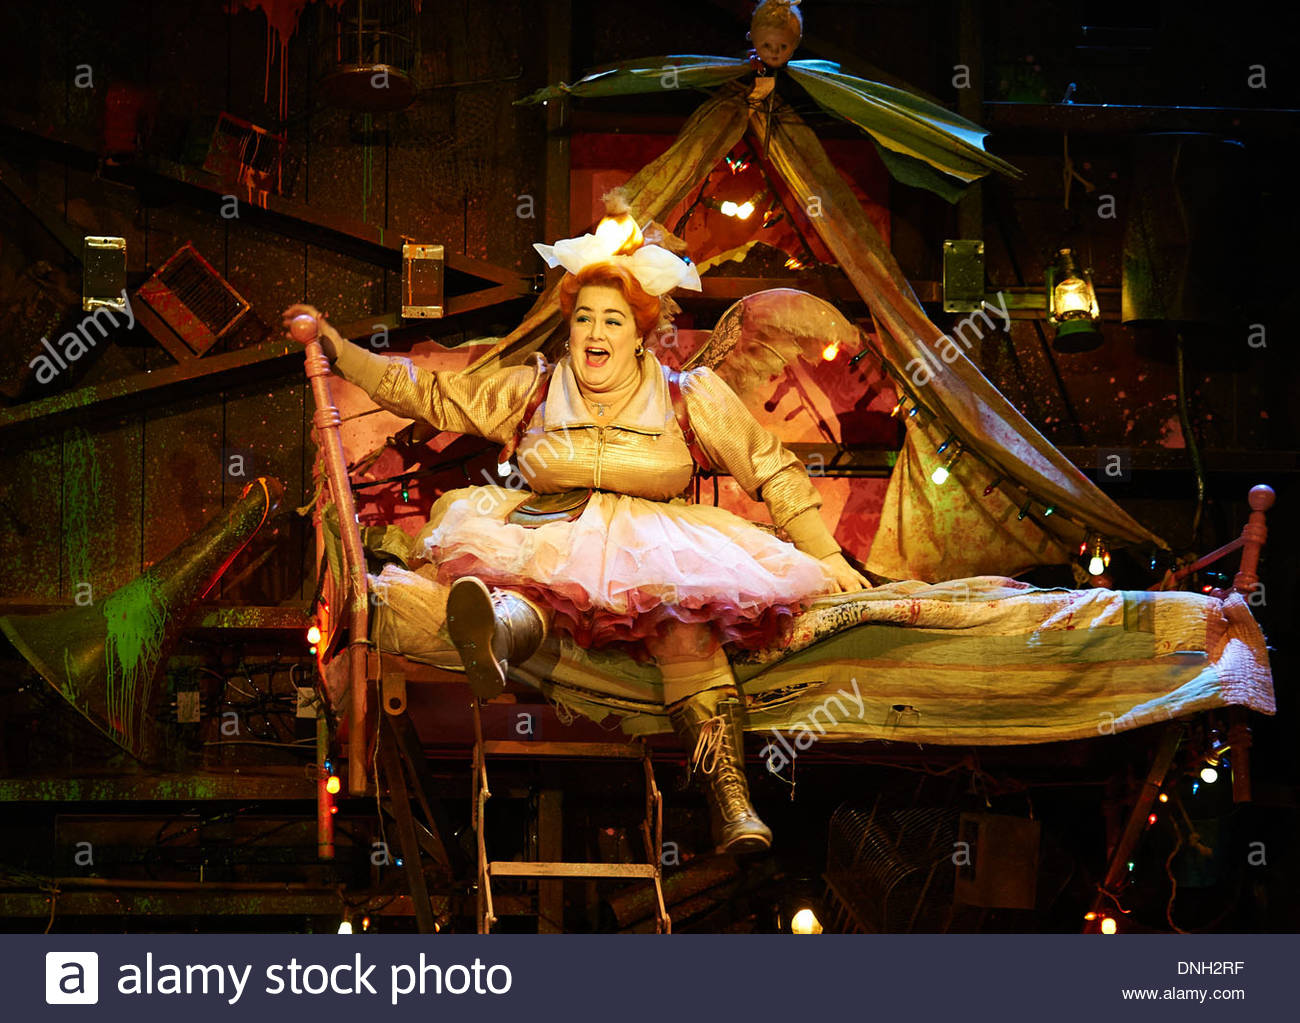 Wendy and Peter Pan by Ella Hickson, adapted from the novel by J M Barrie. A Royal Shakespeare Company Production directed by Jonathan Mundy. With Charlotte Mills as Tink. Opens at The Royal Shakespeare Theatre , Stratford Upon Avon on 18/12/13 - Stock Image